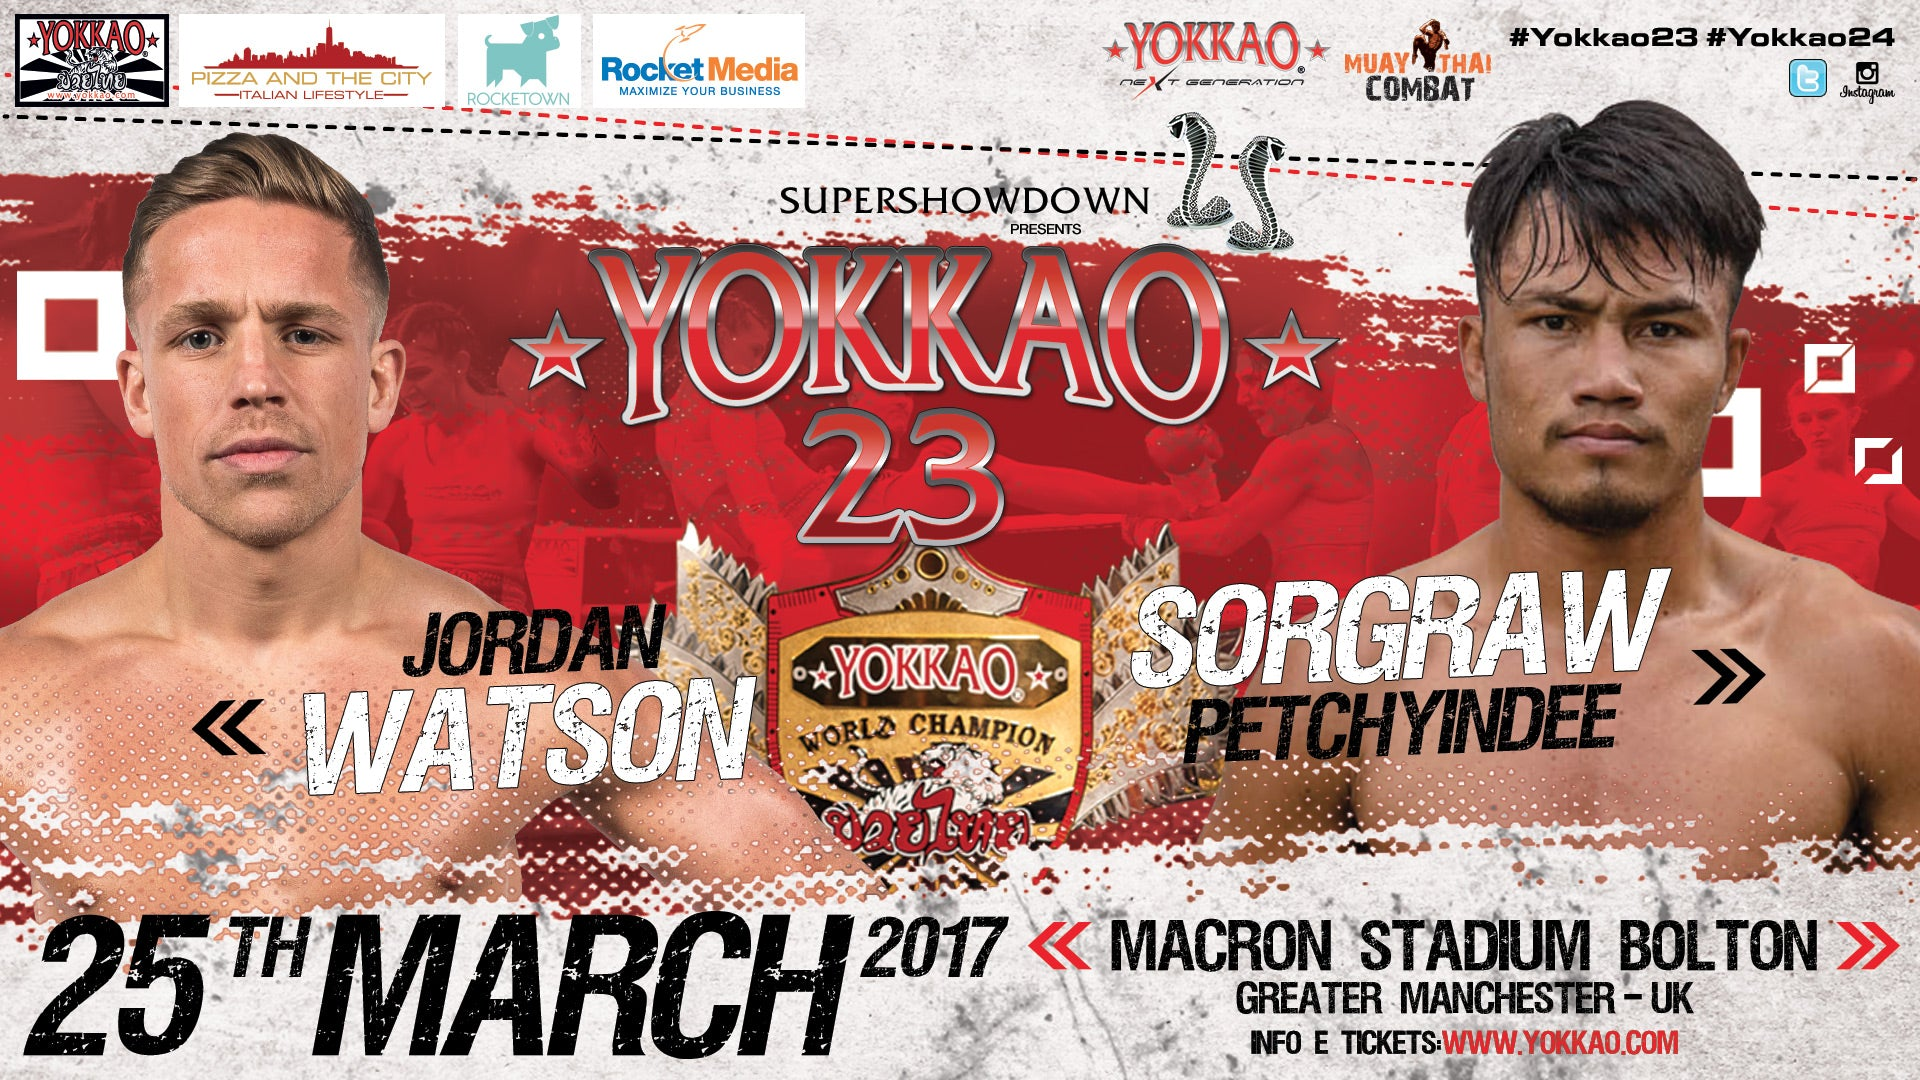 Jordan Watson to defend the World Title against Sorgraw Petchyindee!